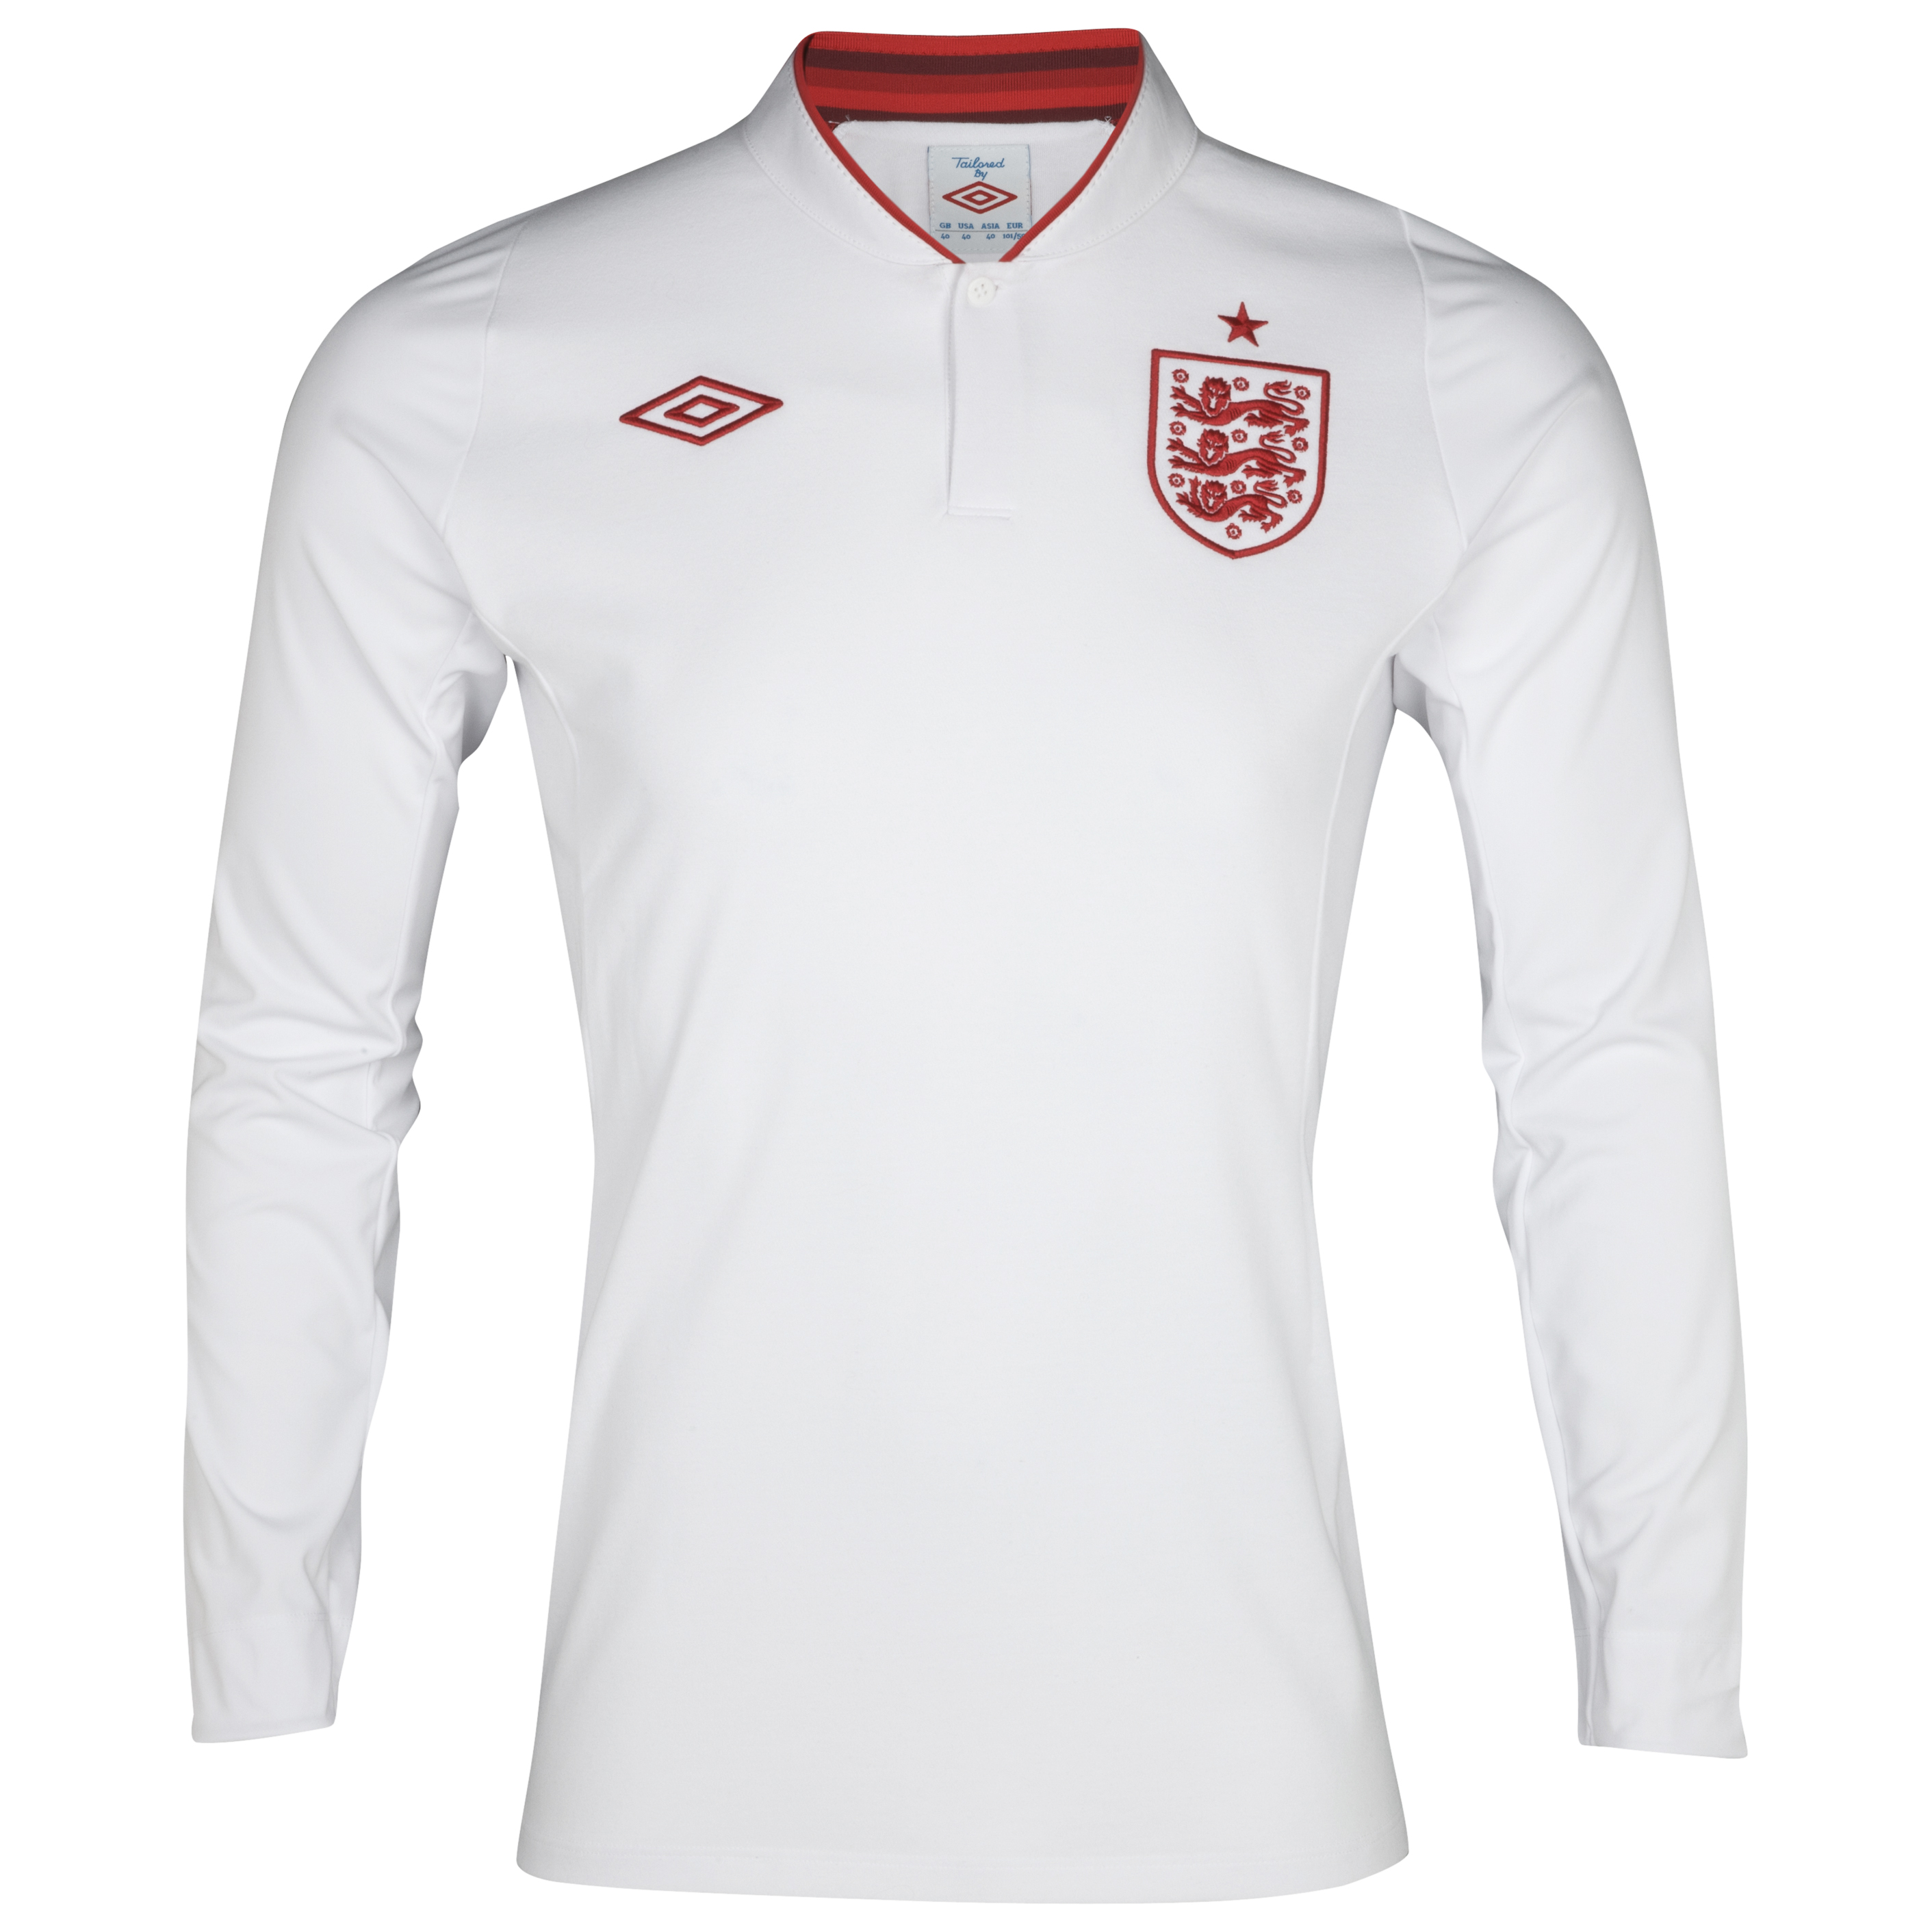 England Home Shirt 2012/13 Long Sleeve Boys